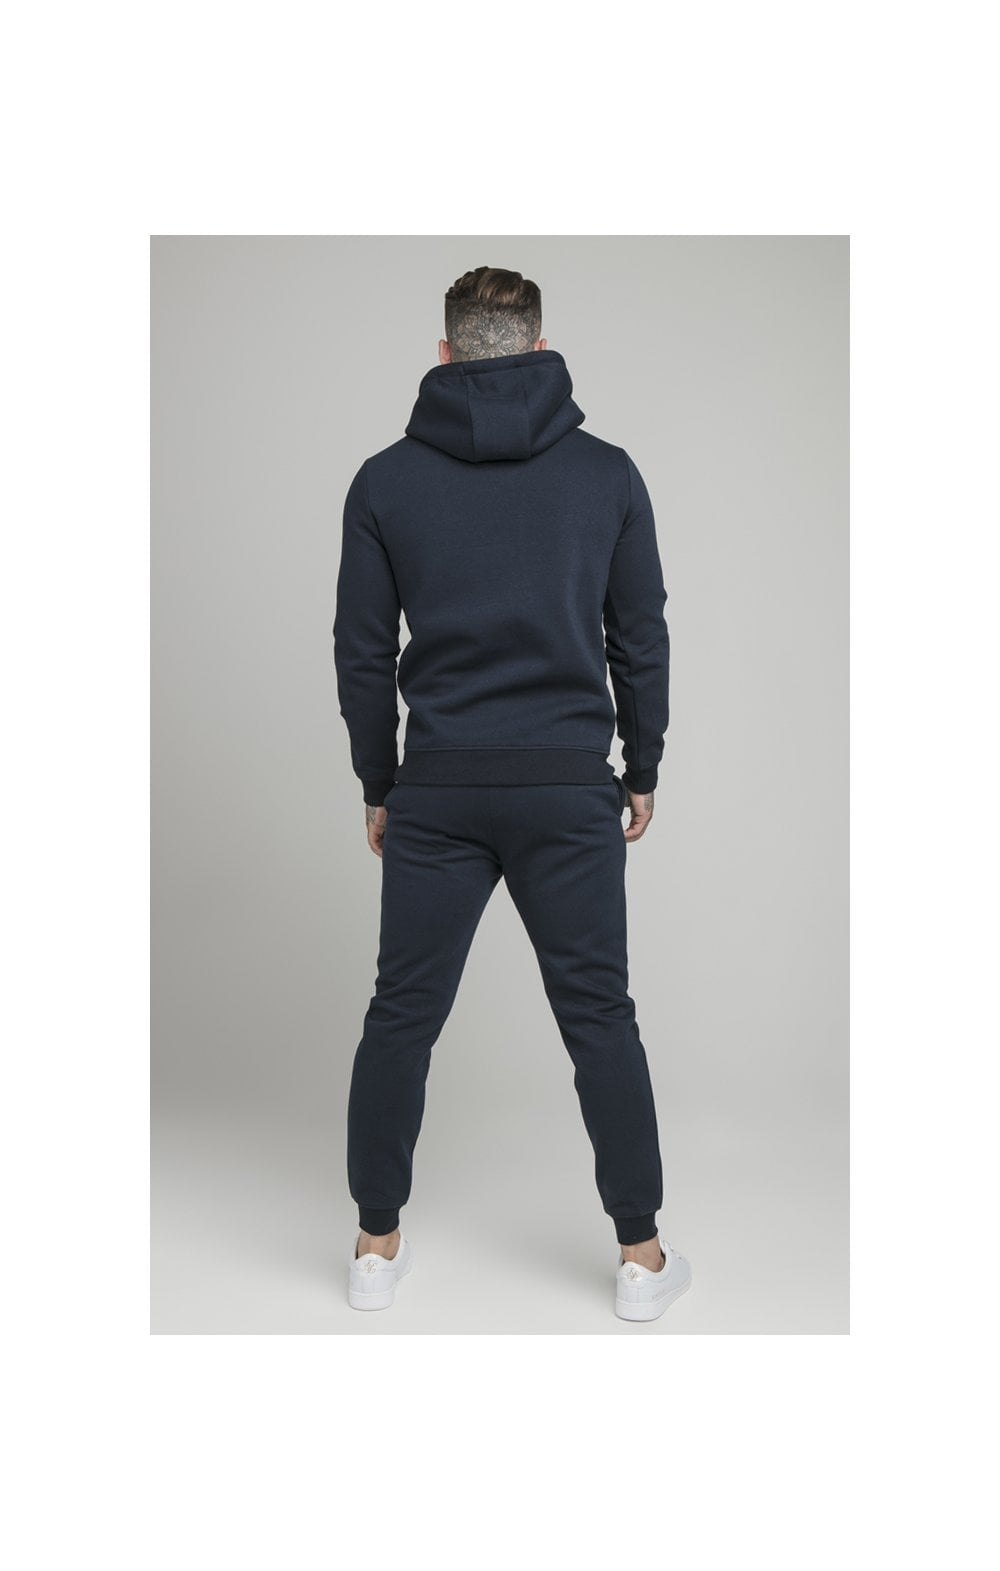 Load image into Gallery viewer, SikSilk Muscle Fit Overhead Hoodie - Navy (5)